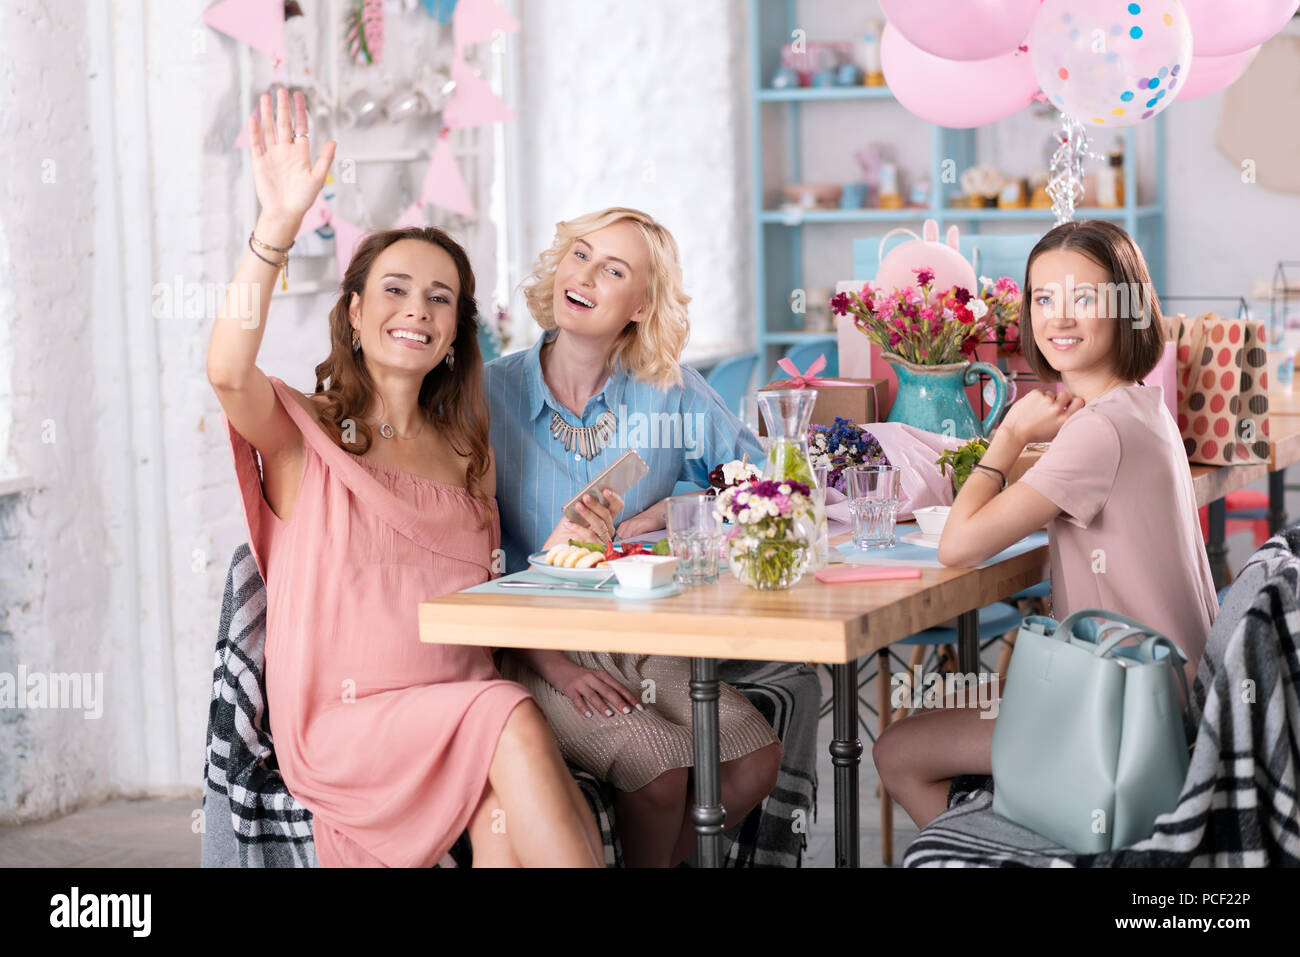 Three Women Celebrating Baby Shower In Nice Decorated Cafe Stock